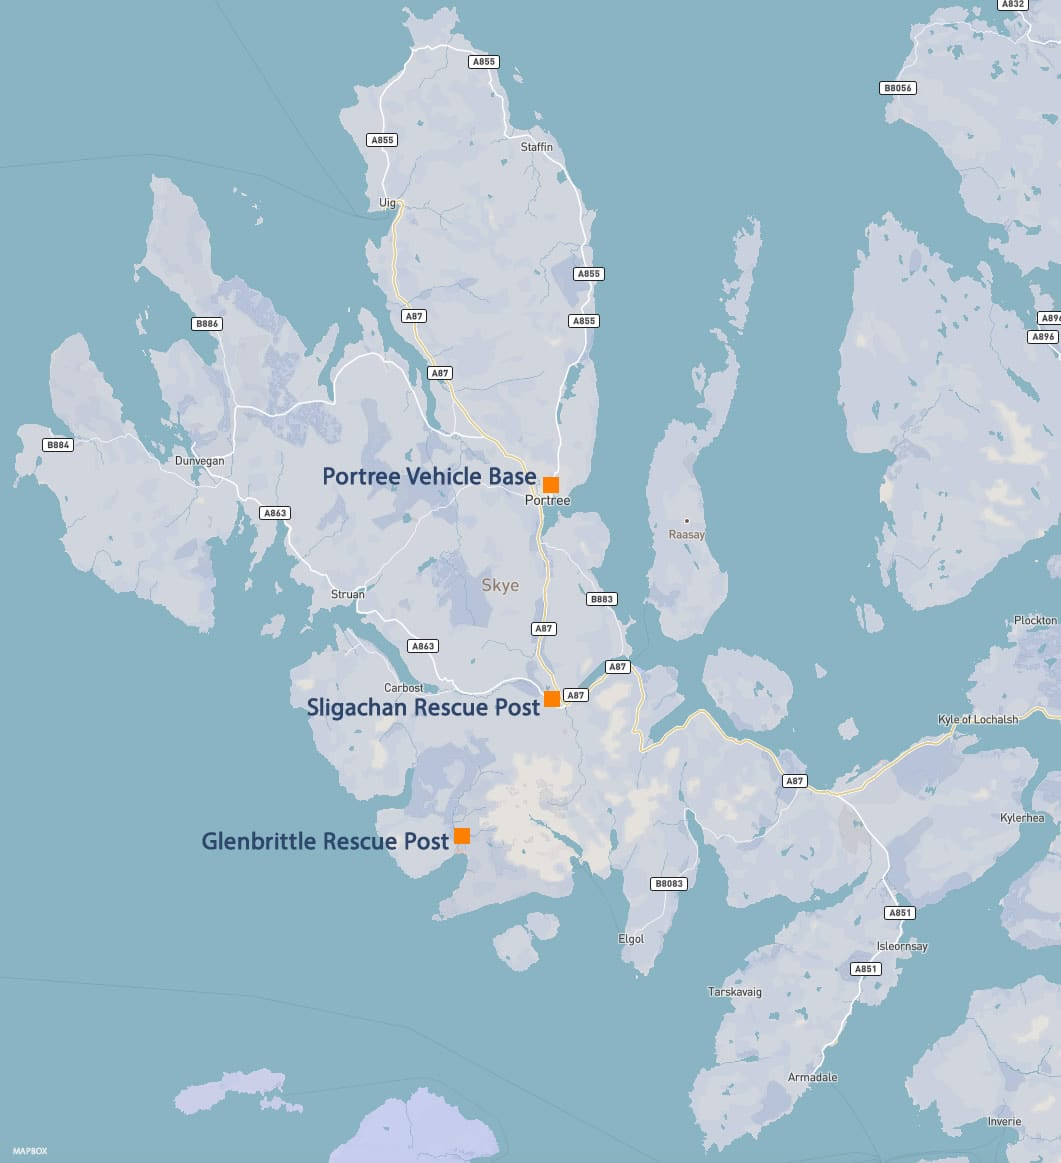 skye mountain rescue base locations